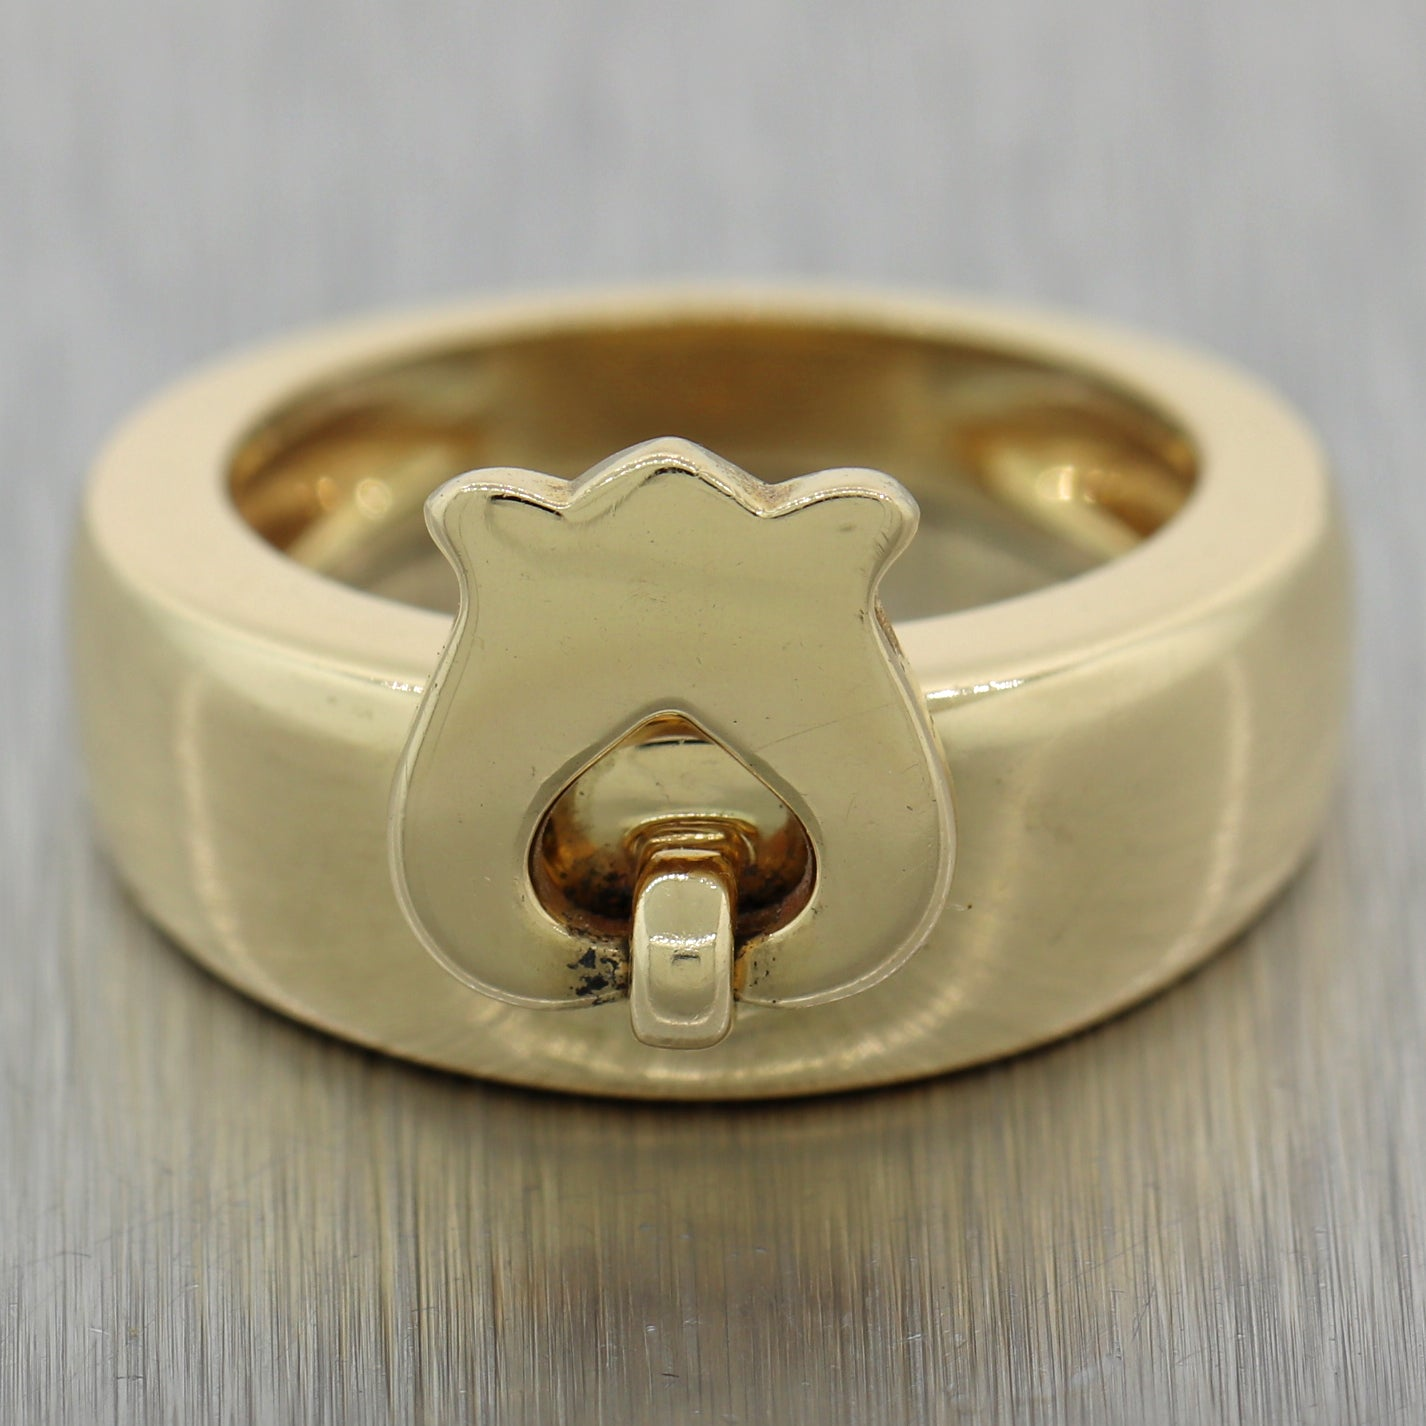 Dior 18k Yellow Gold Vintage Rose Size 52 Band Ring